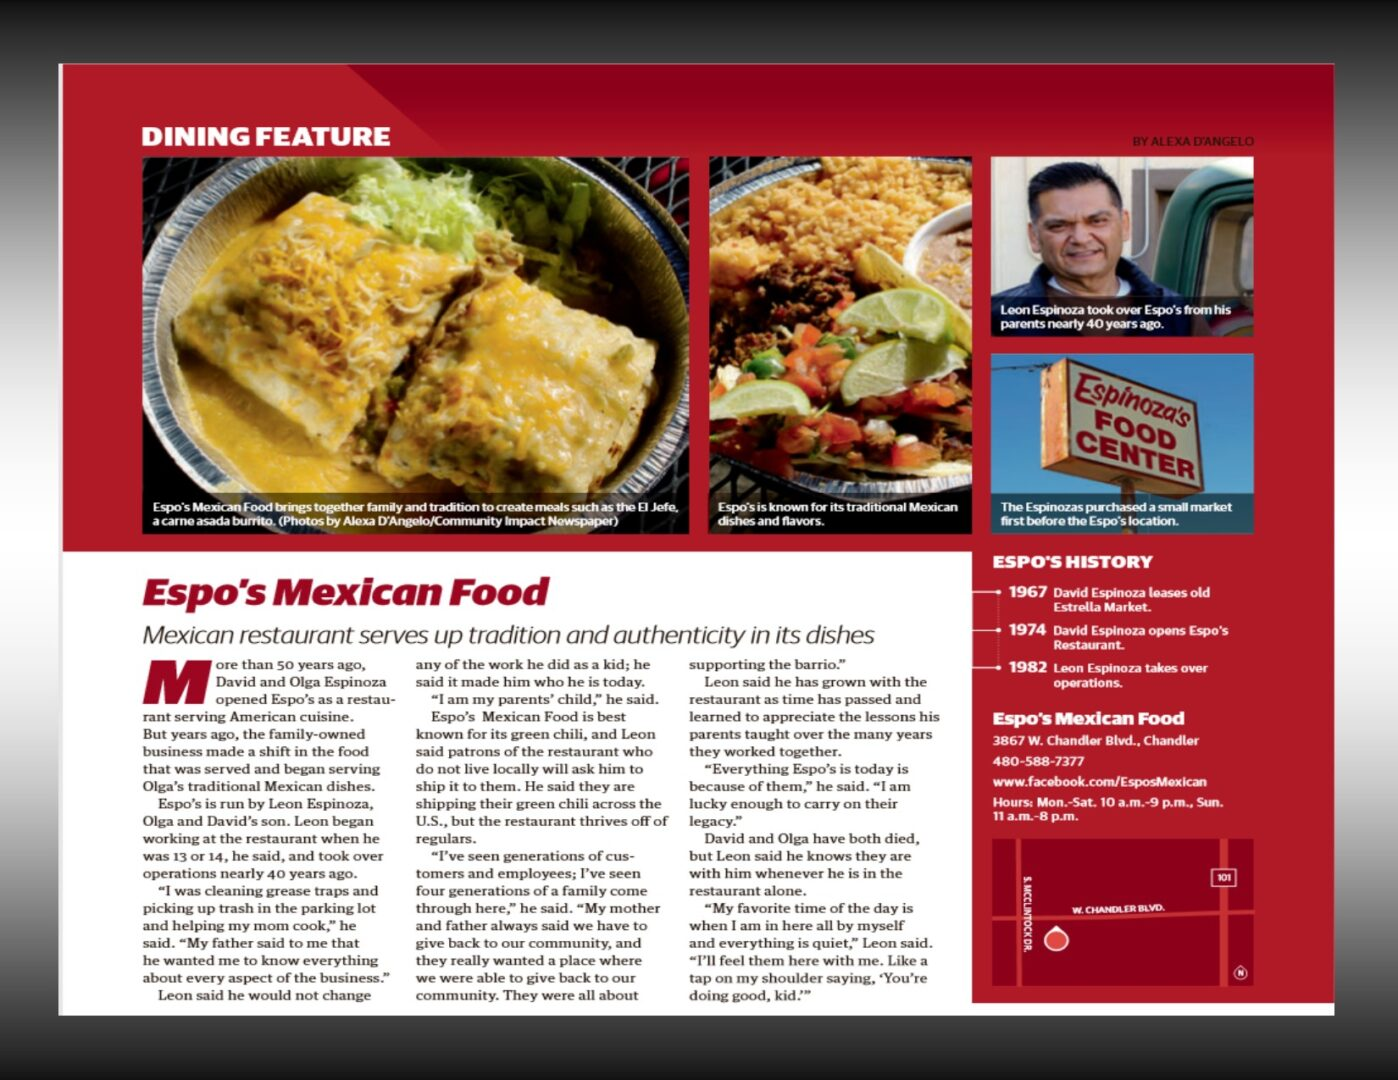 photo of a magazine feature on Espo's Mexican Food